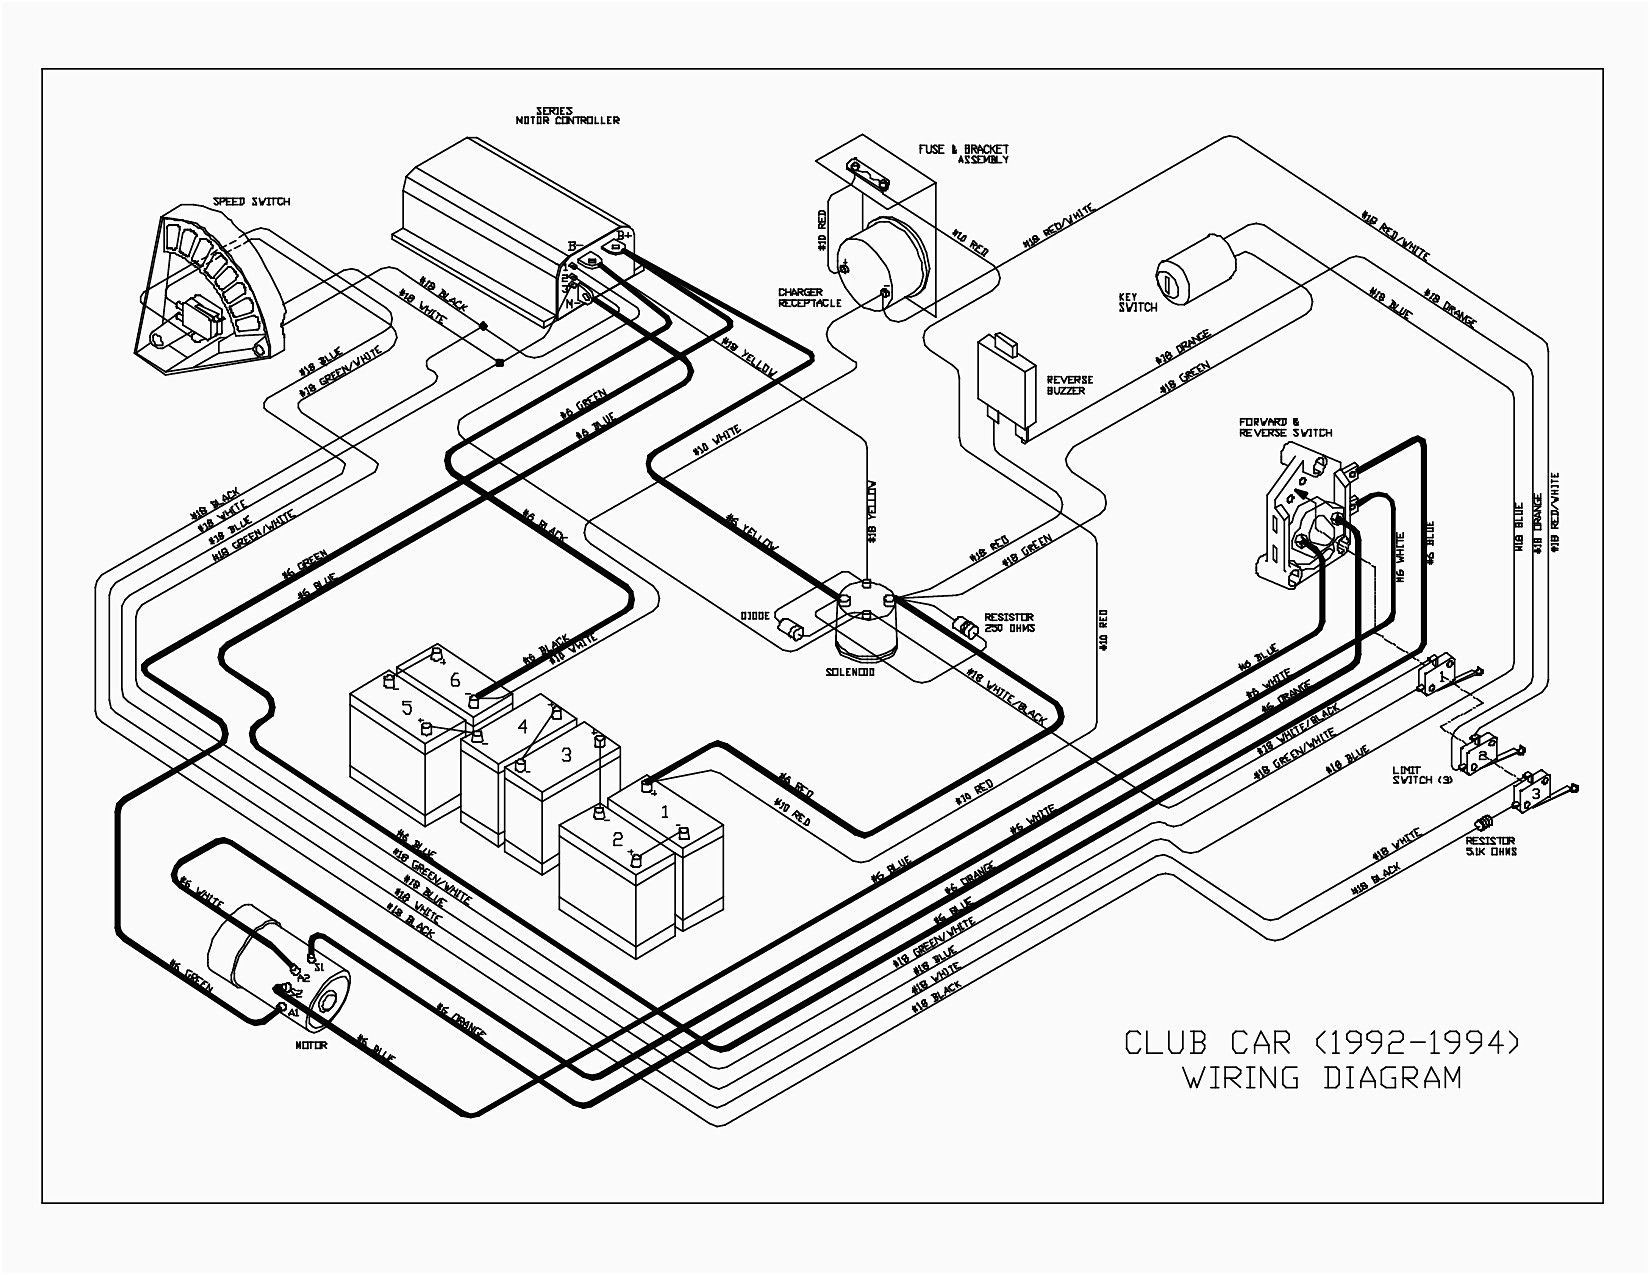 1998 48 volt club car wiring diagram